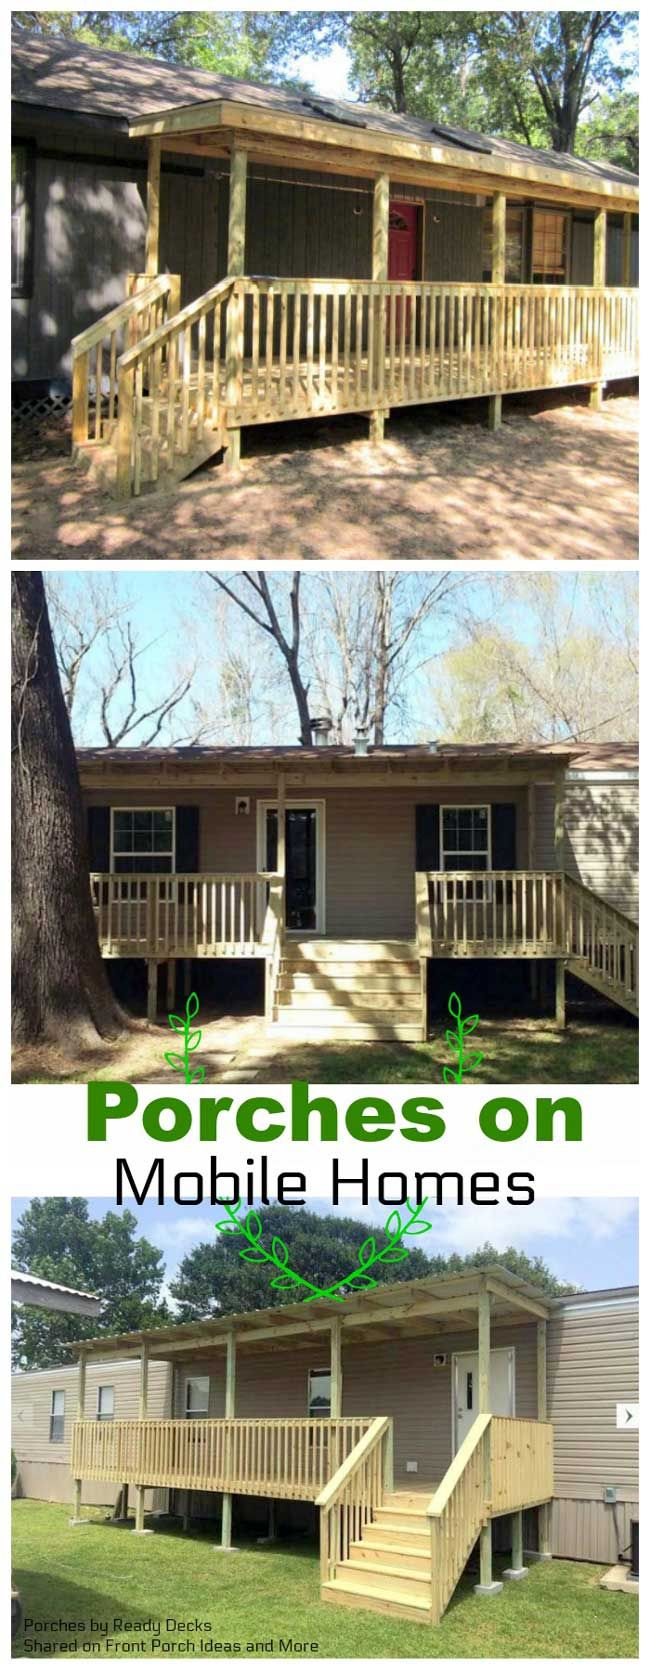 232 best Mobile Home Porch Designs images on Pinterest | Mobile ...